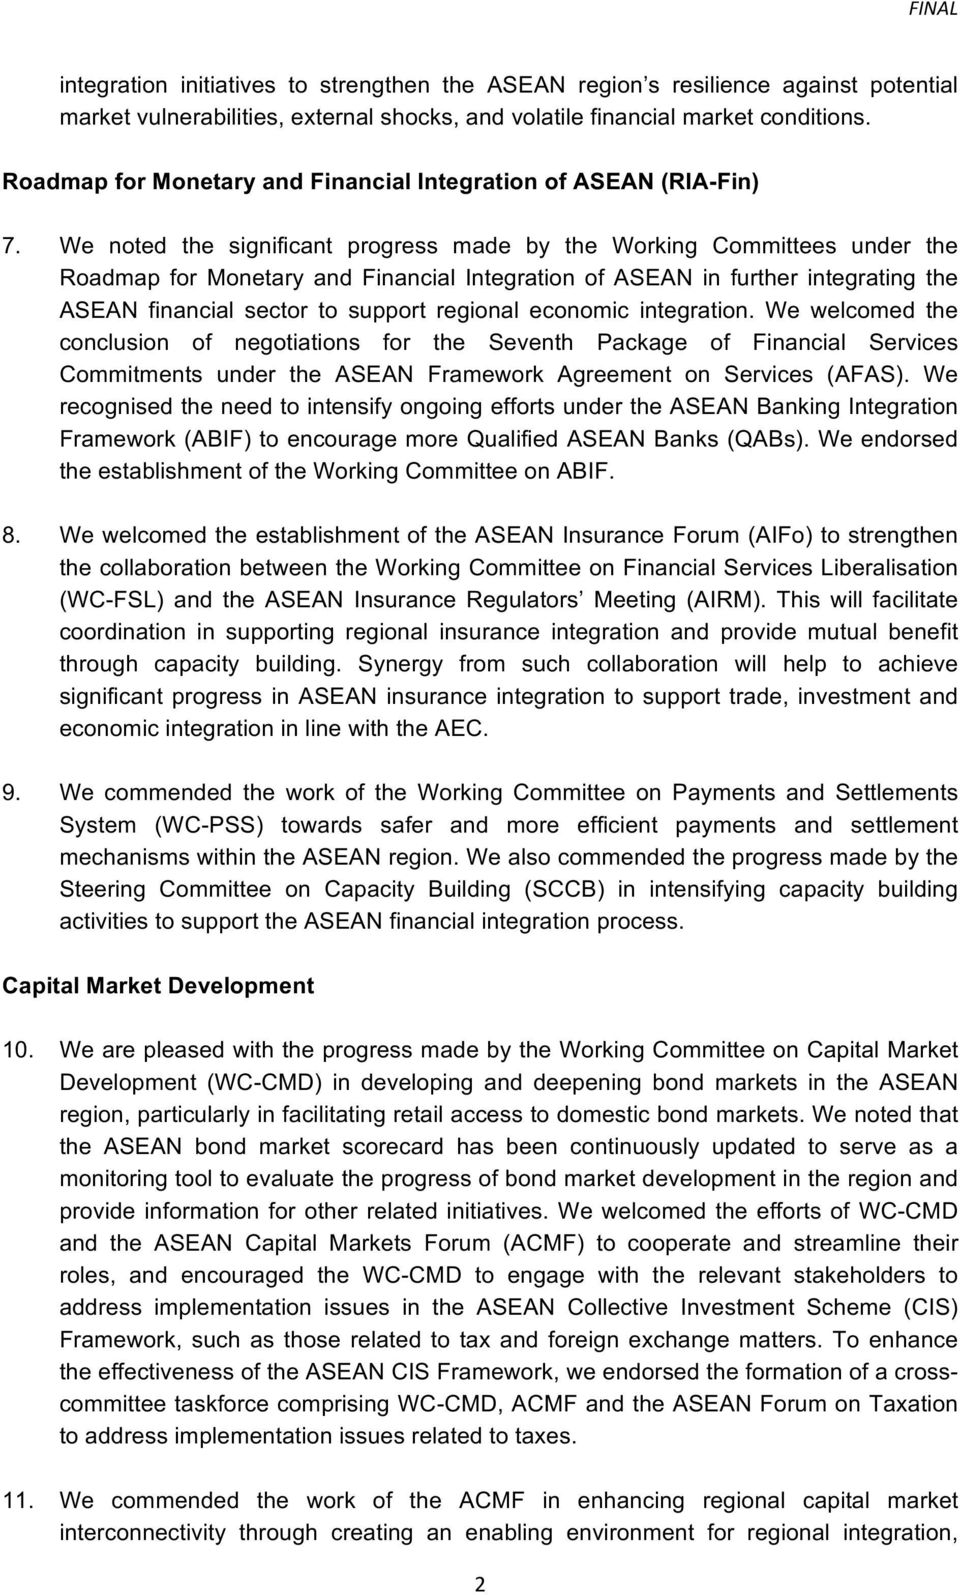 We noted the significant progress made by the Working Committees under the Roadmap for Monetary and Financial Integration of ASEAN in further integrating the ASEAN financial sector to support